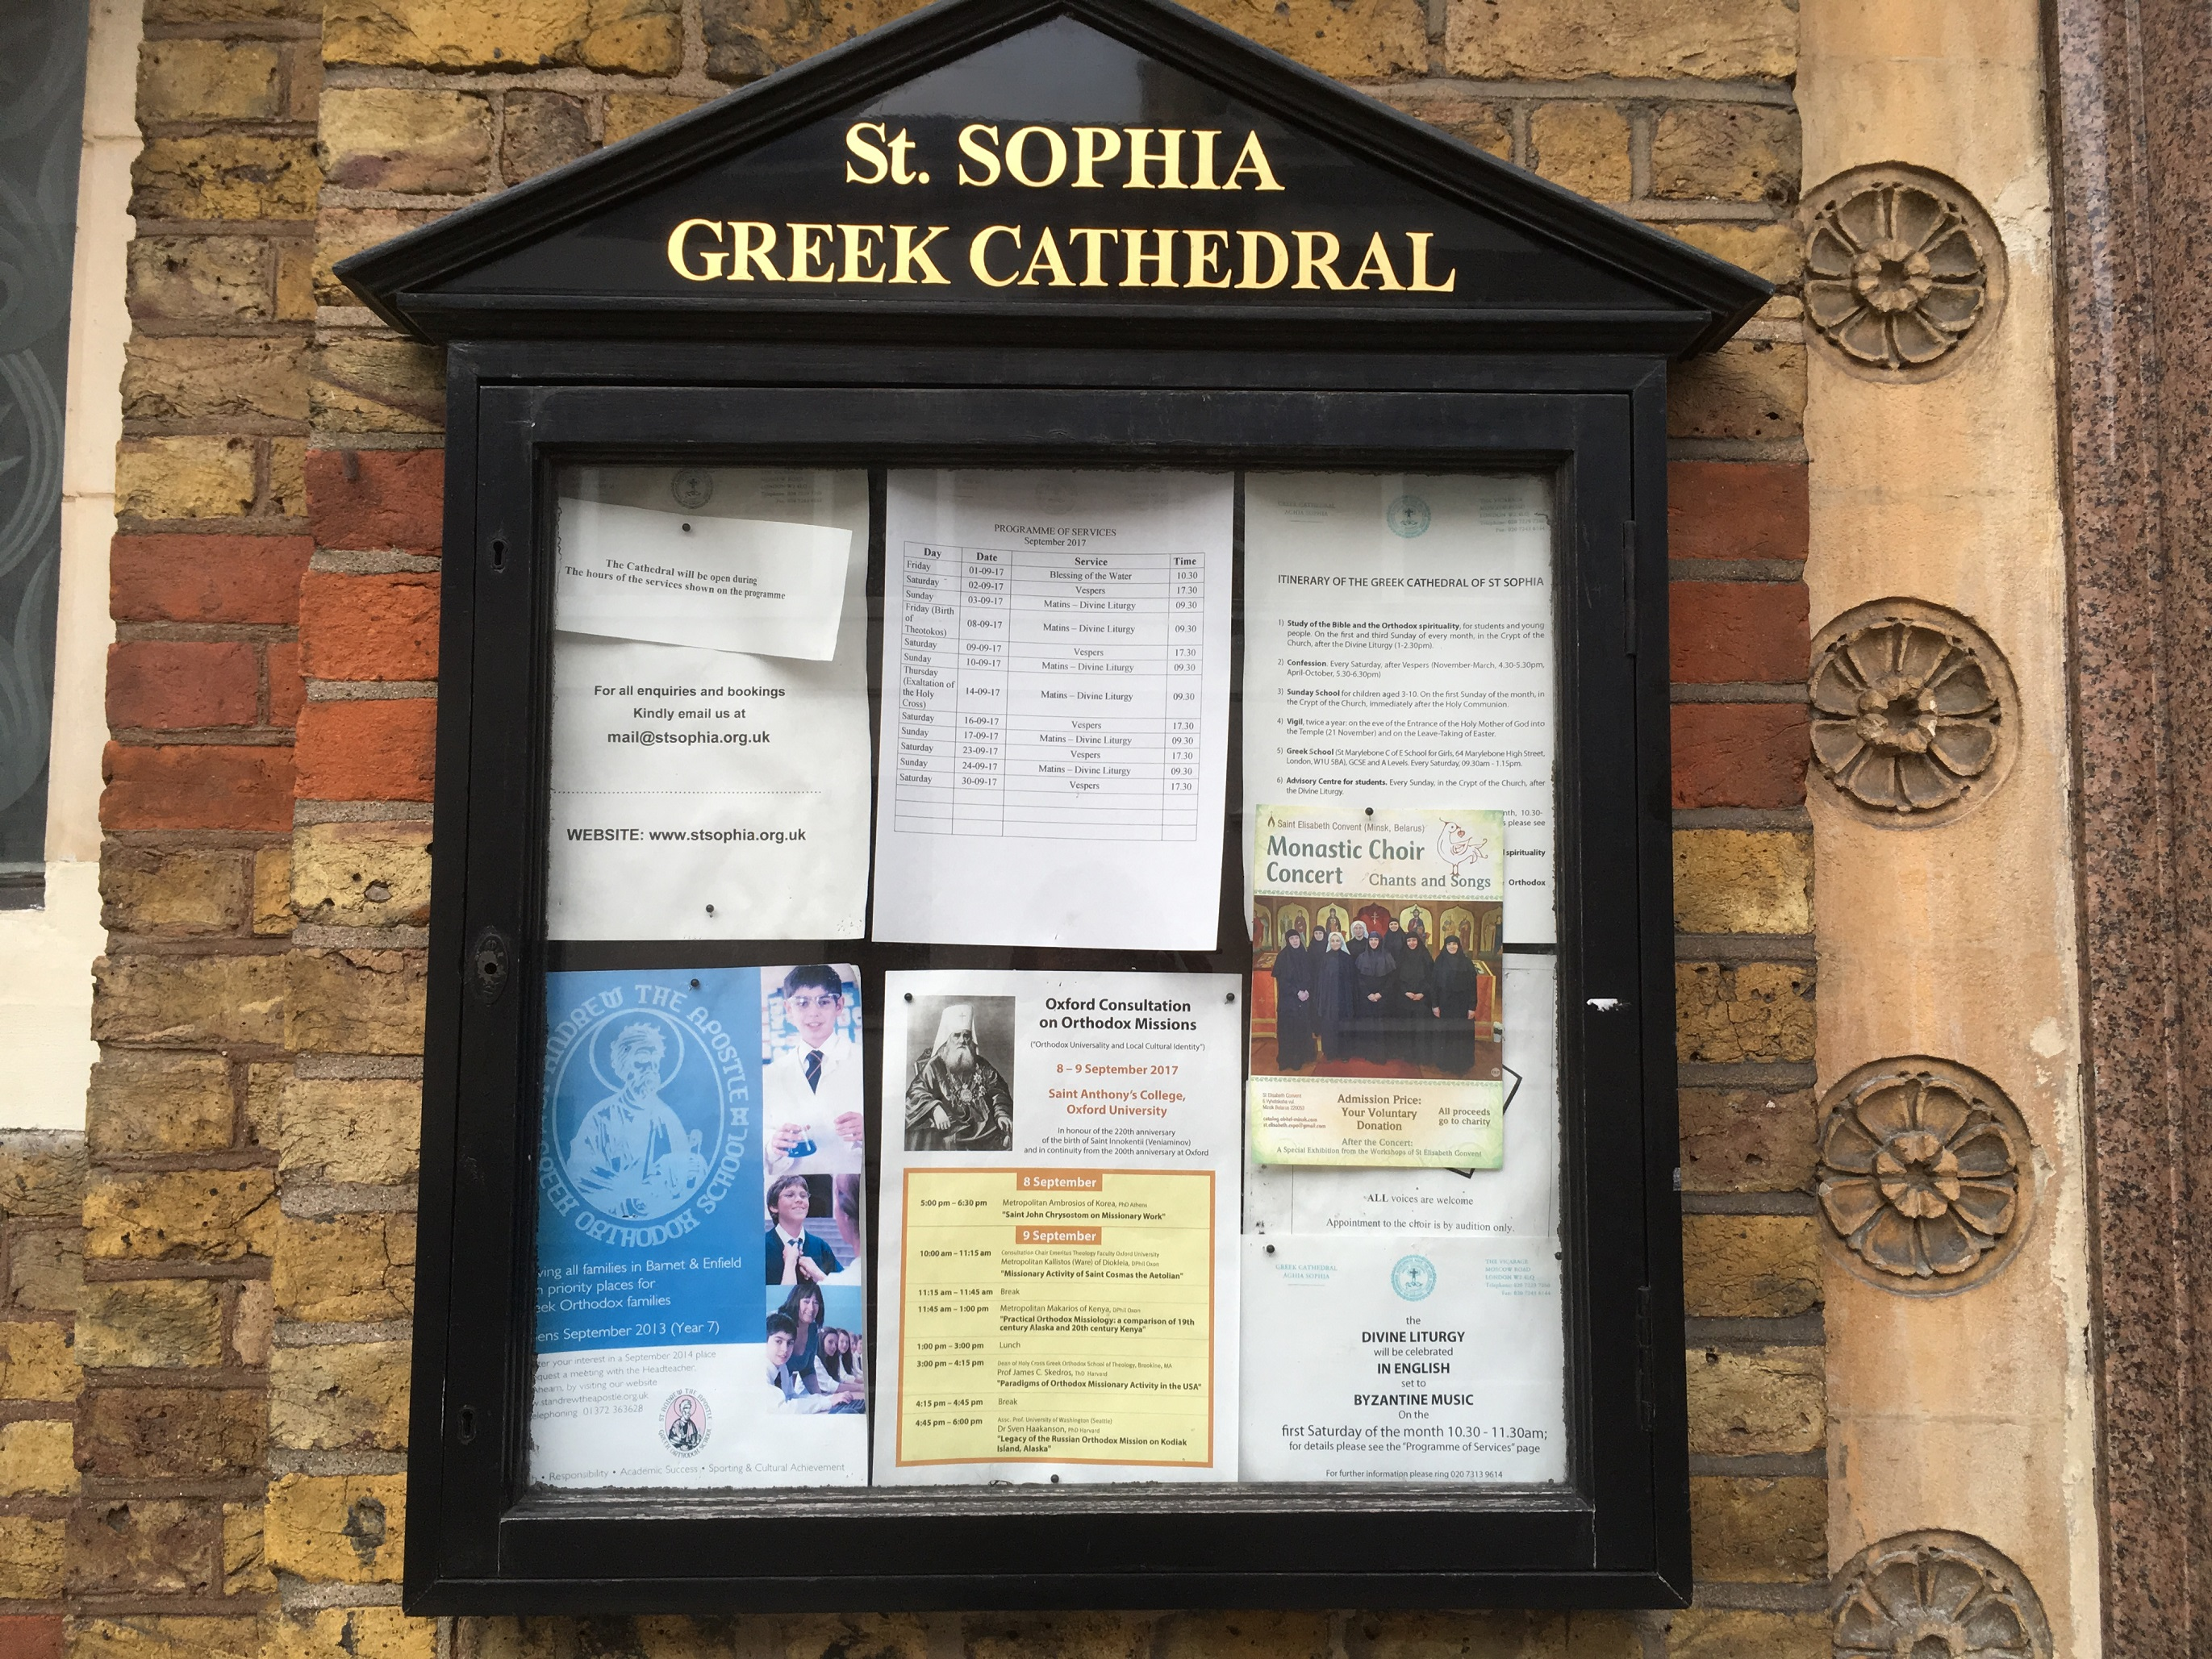 St. Sophia Greek Cathedral notice